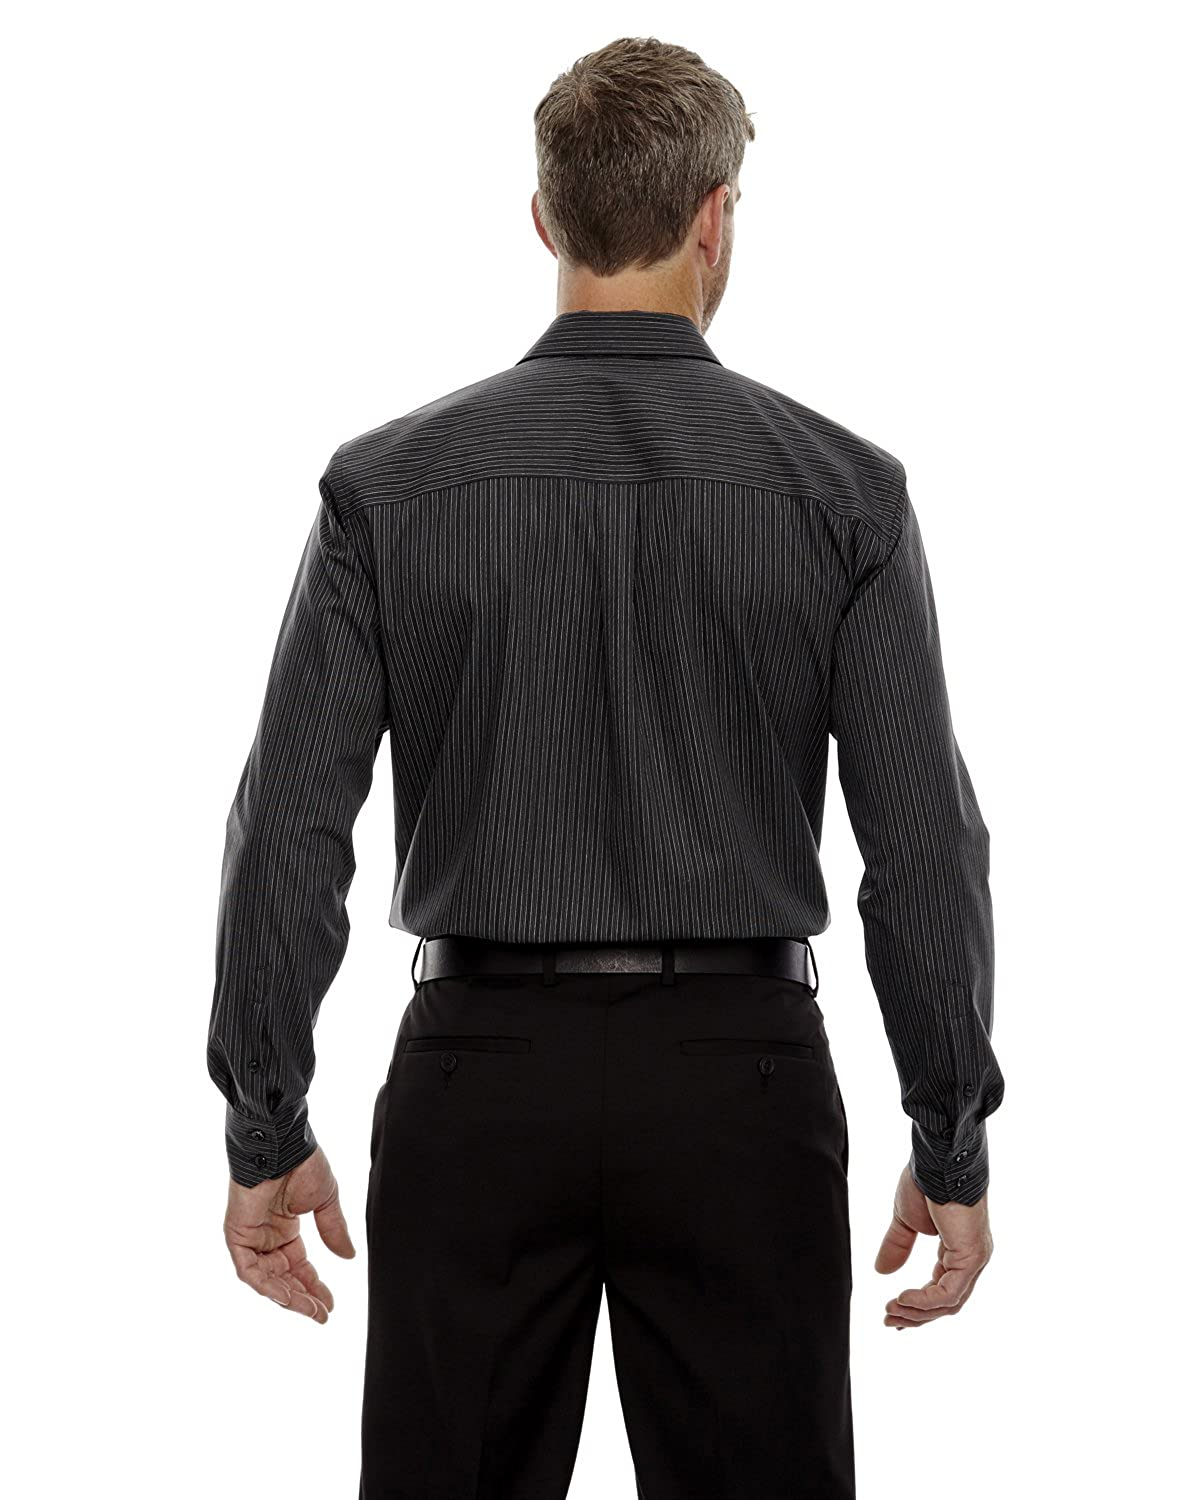 A Product of Ash City North End Mens Boardwalk Wrinkle-Free Two-Ply 80s Cotton